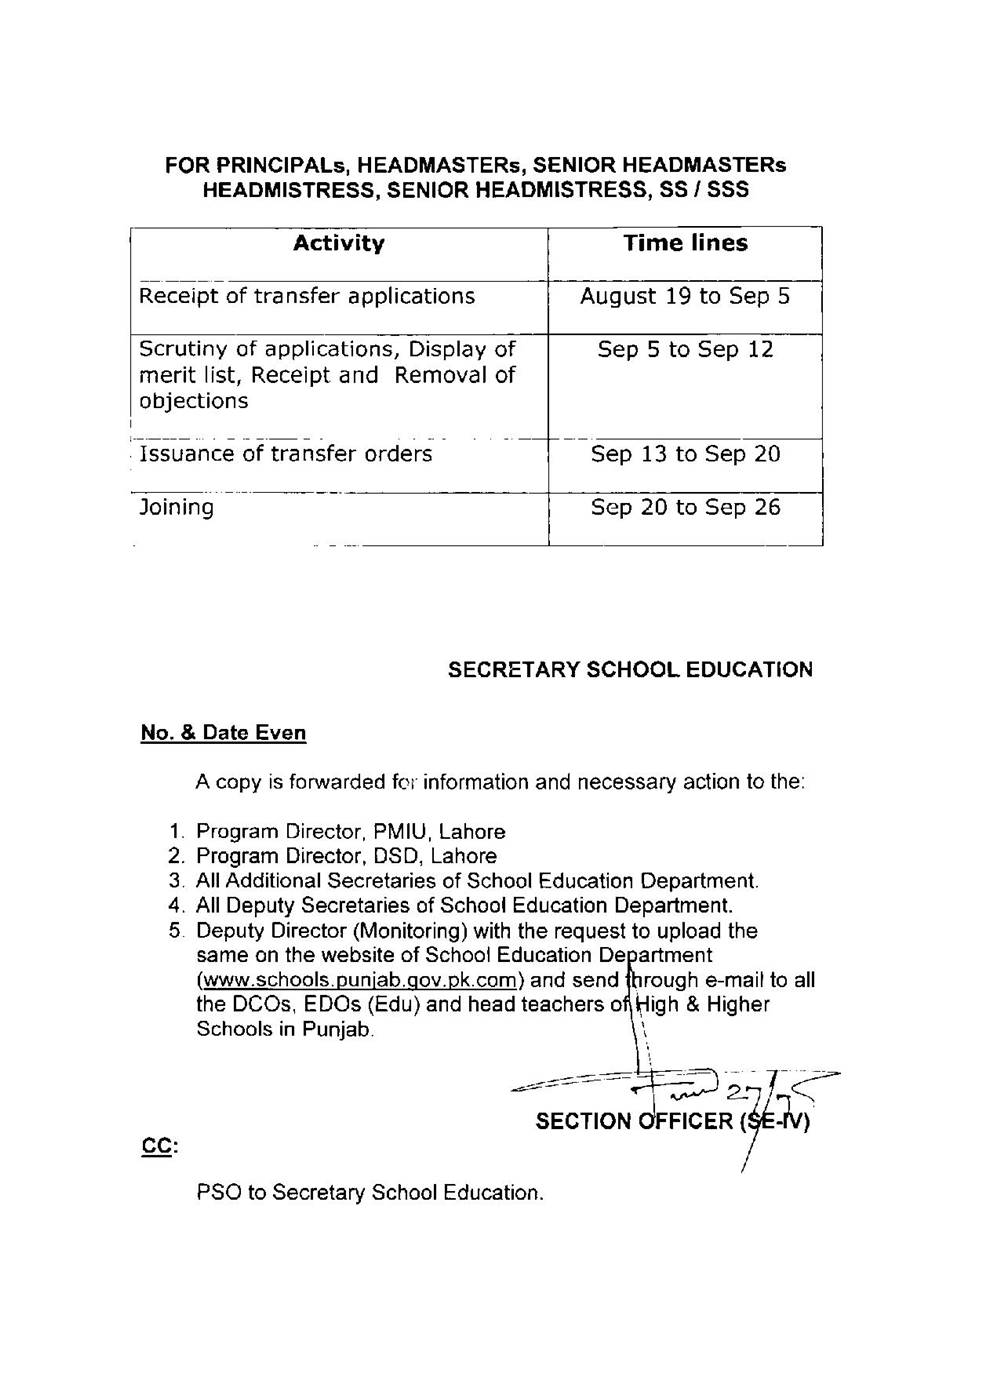 Lifting of Ban Posting Transfer School Education Department Punjab Pakistan 2016-page-002